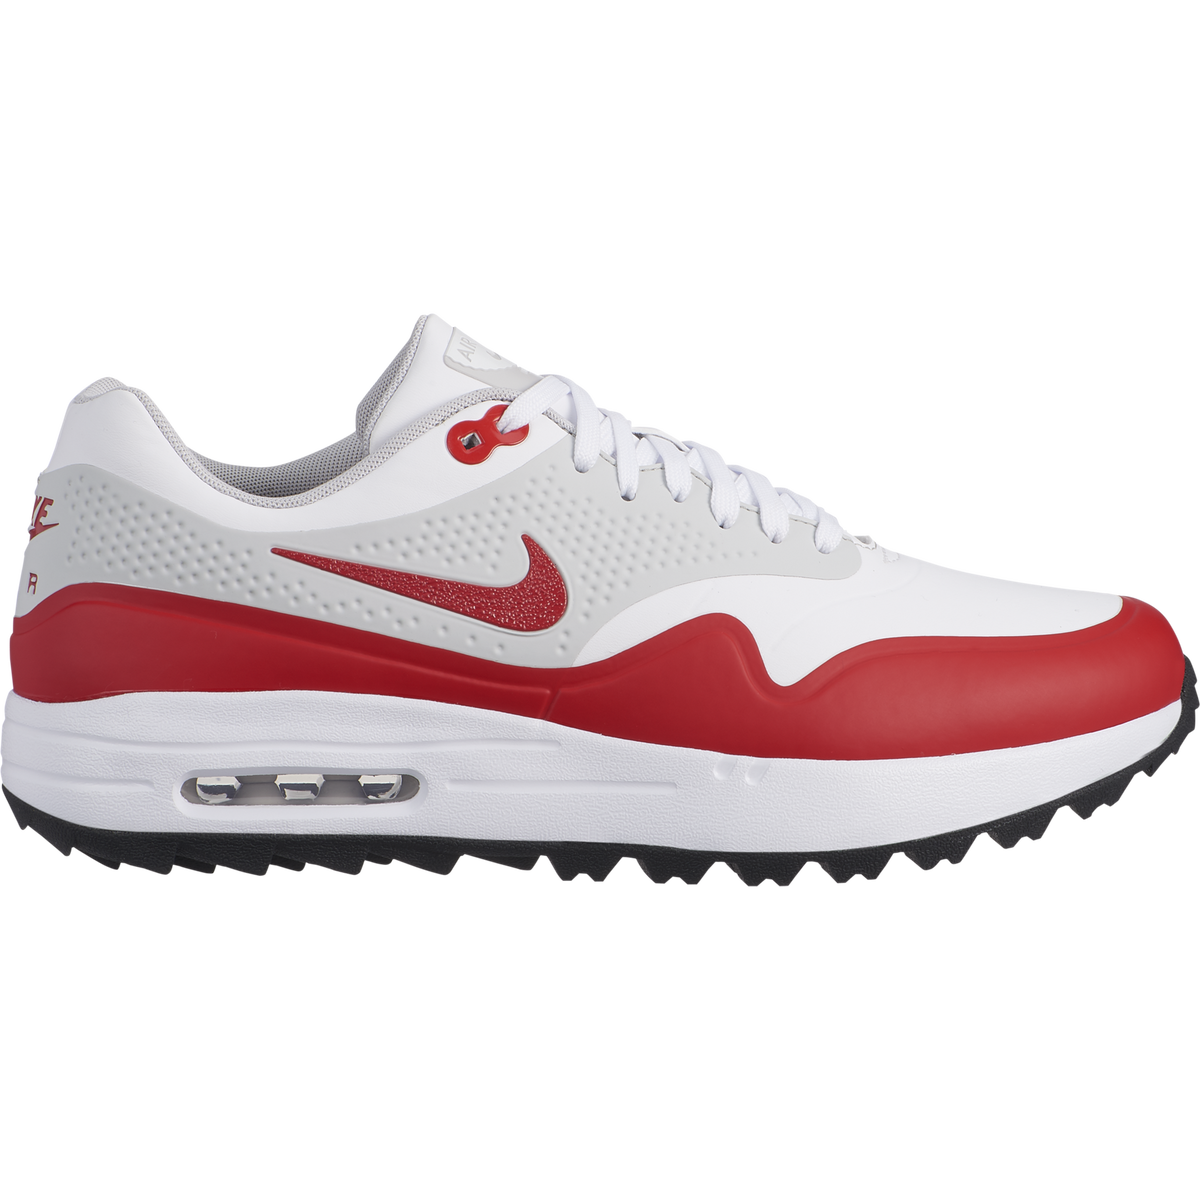 sale retailer 7e374 bb9ee Air Max 1G Mens Golf Shoe - WhiteRed